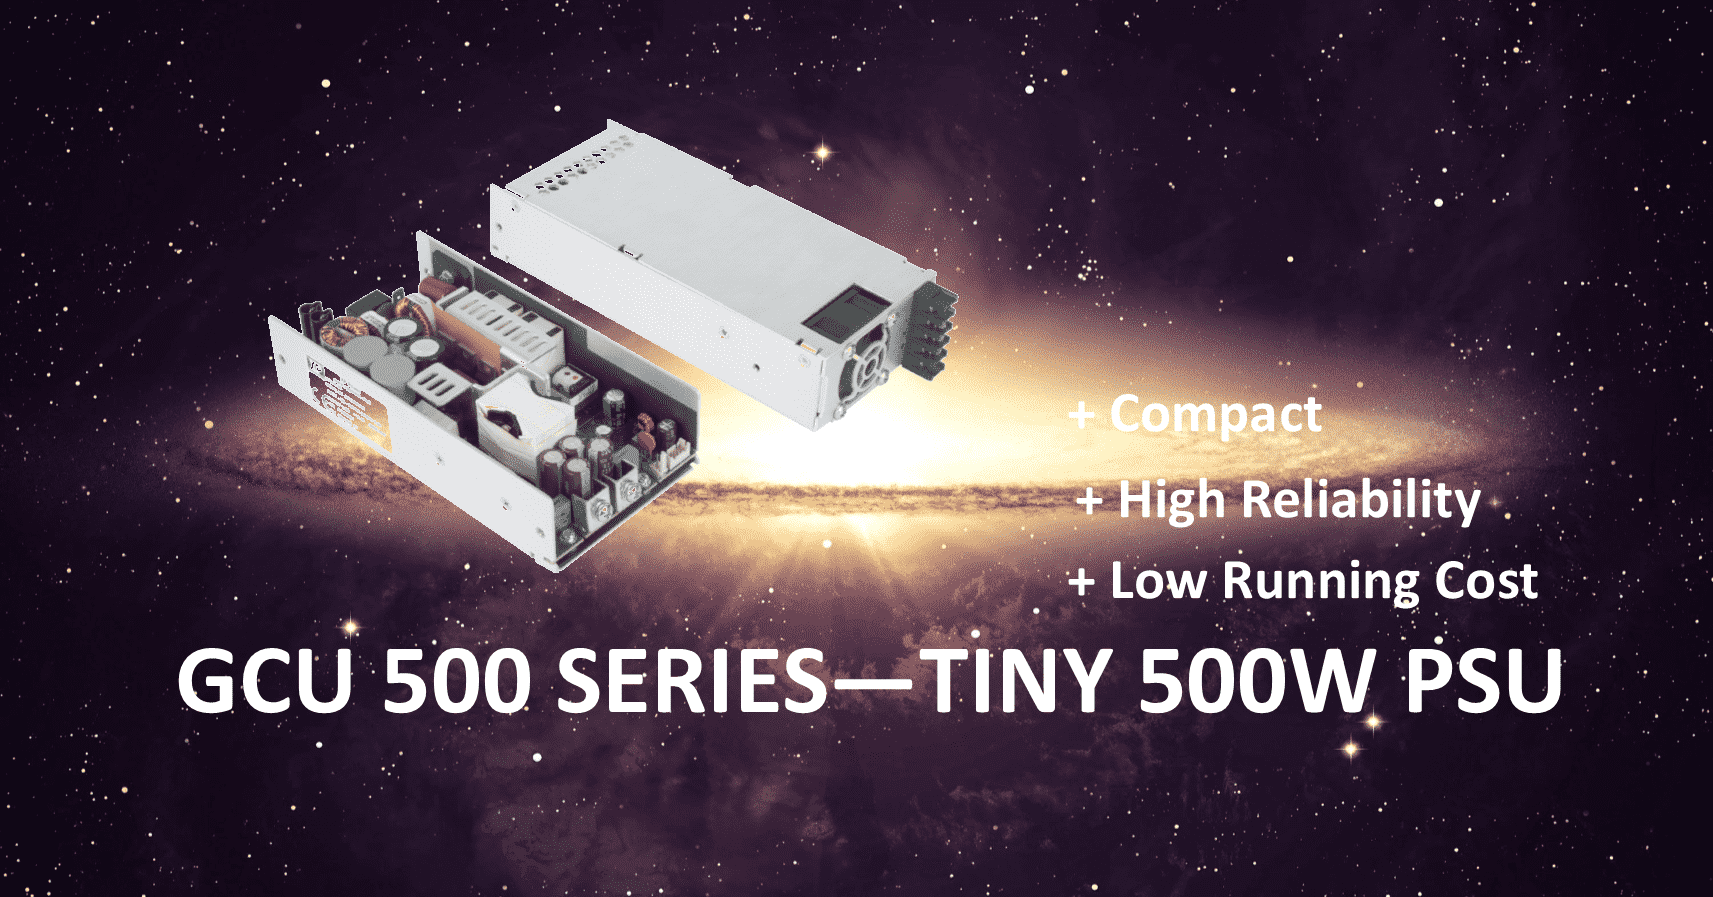 GCU 500 Series Tiny Power Supply 500 W